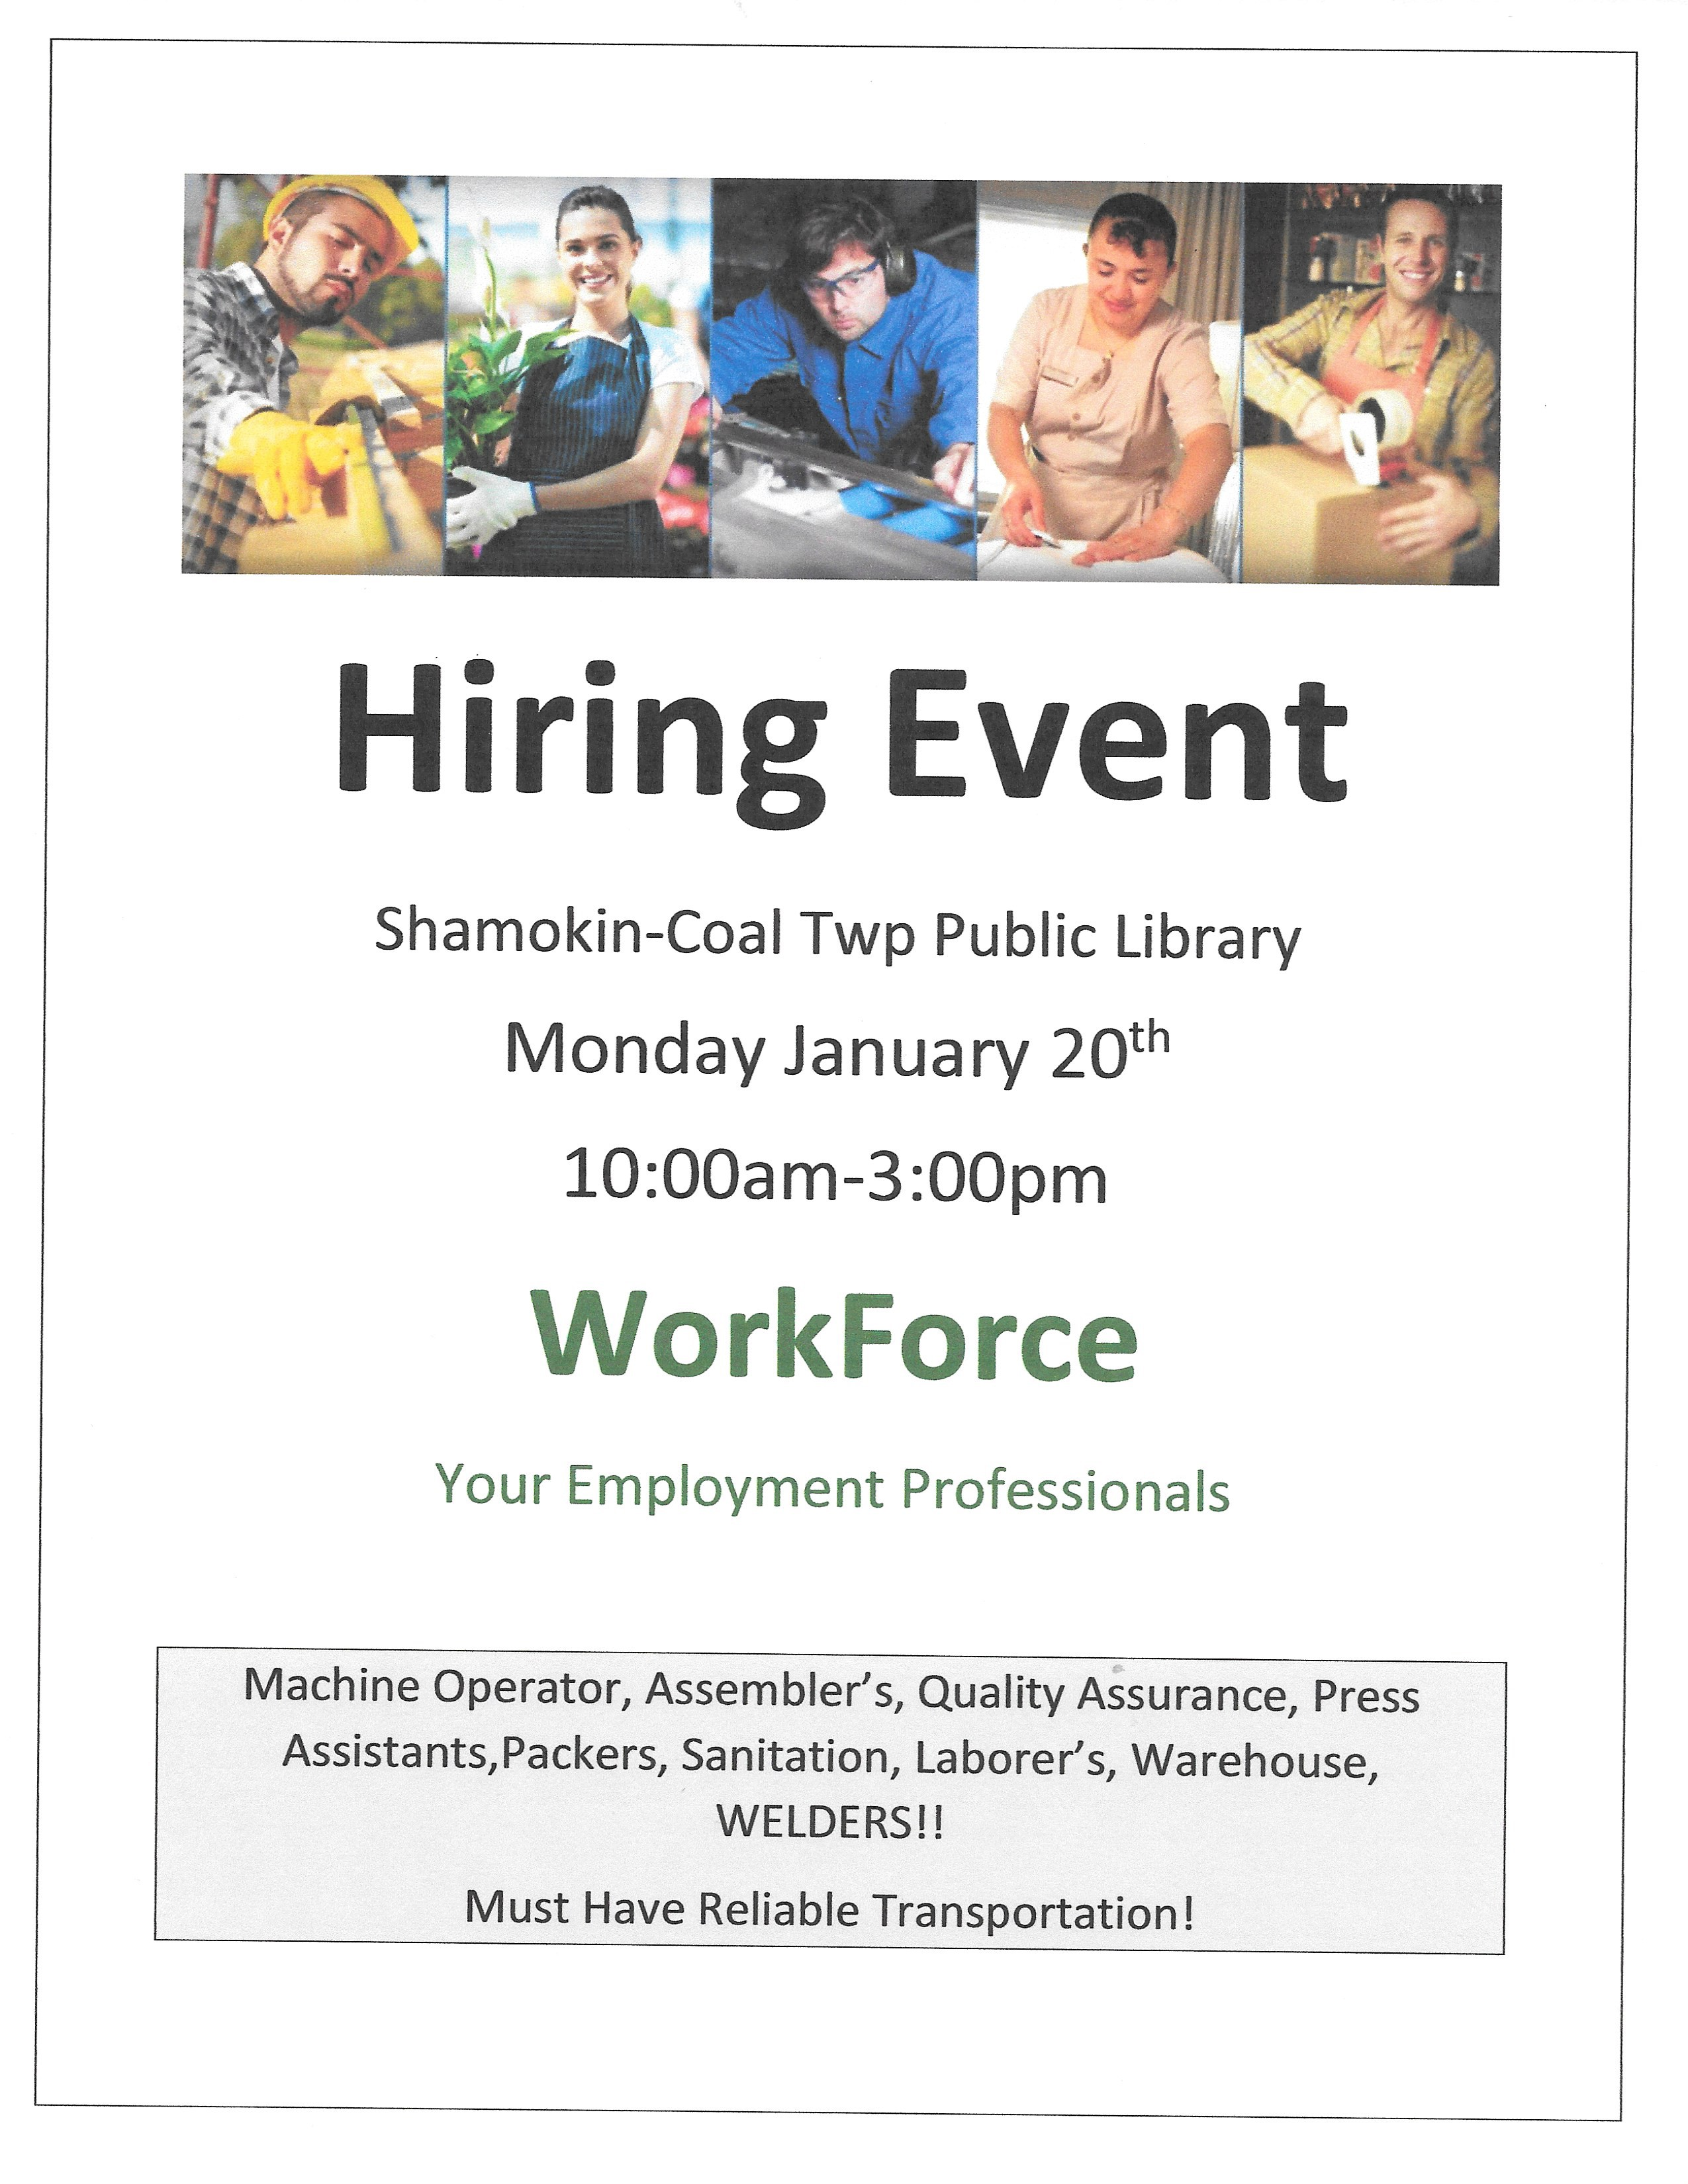 Worforce hiring event 1-20-20